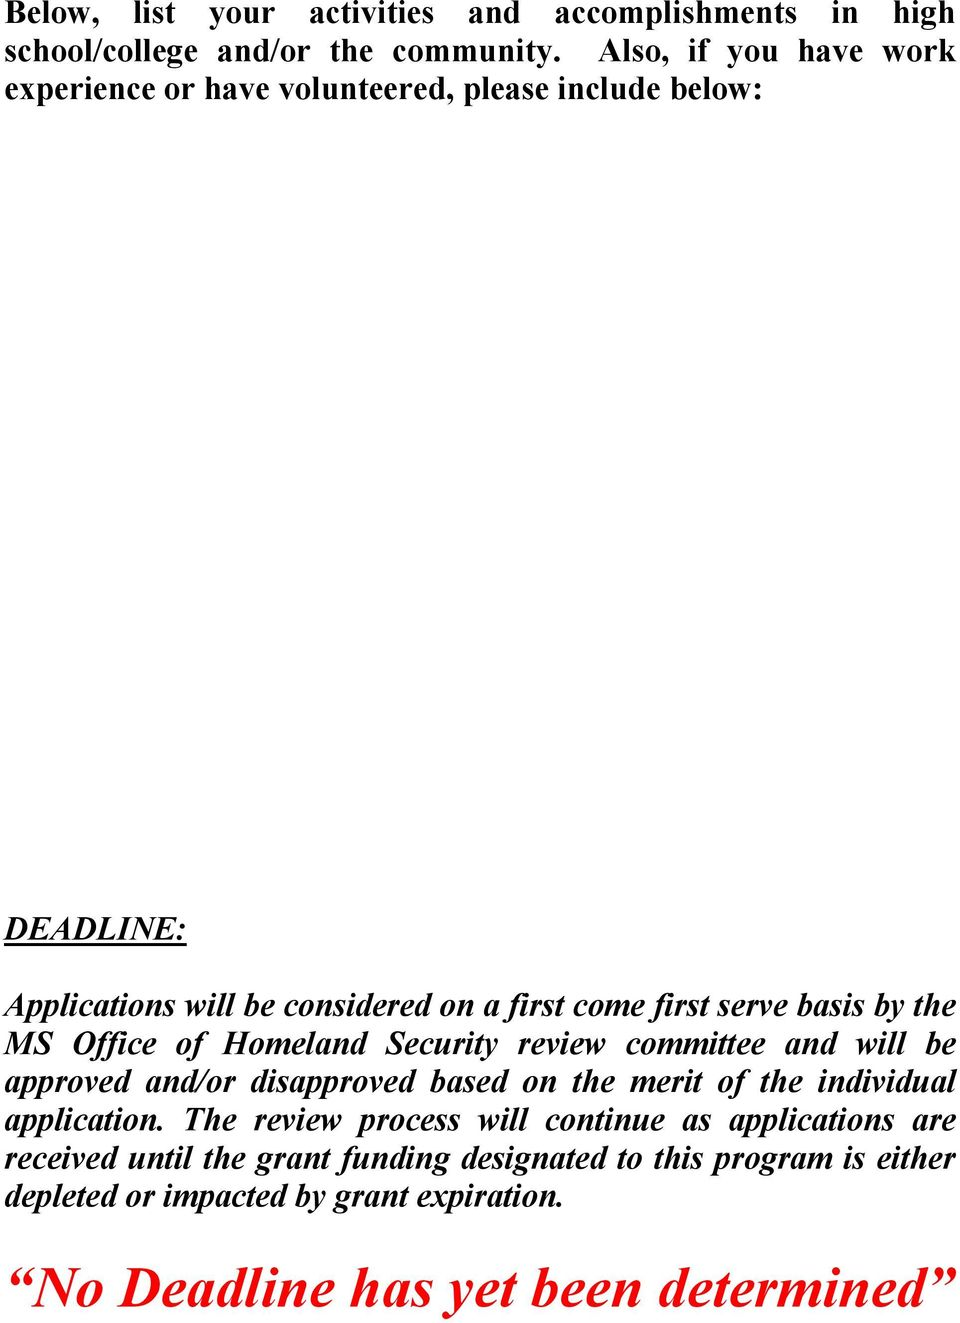 basis by the MS Office of Homeland Security review committee and will be approved and/or disapproved based on the merit of the individual